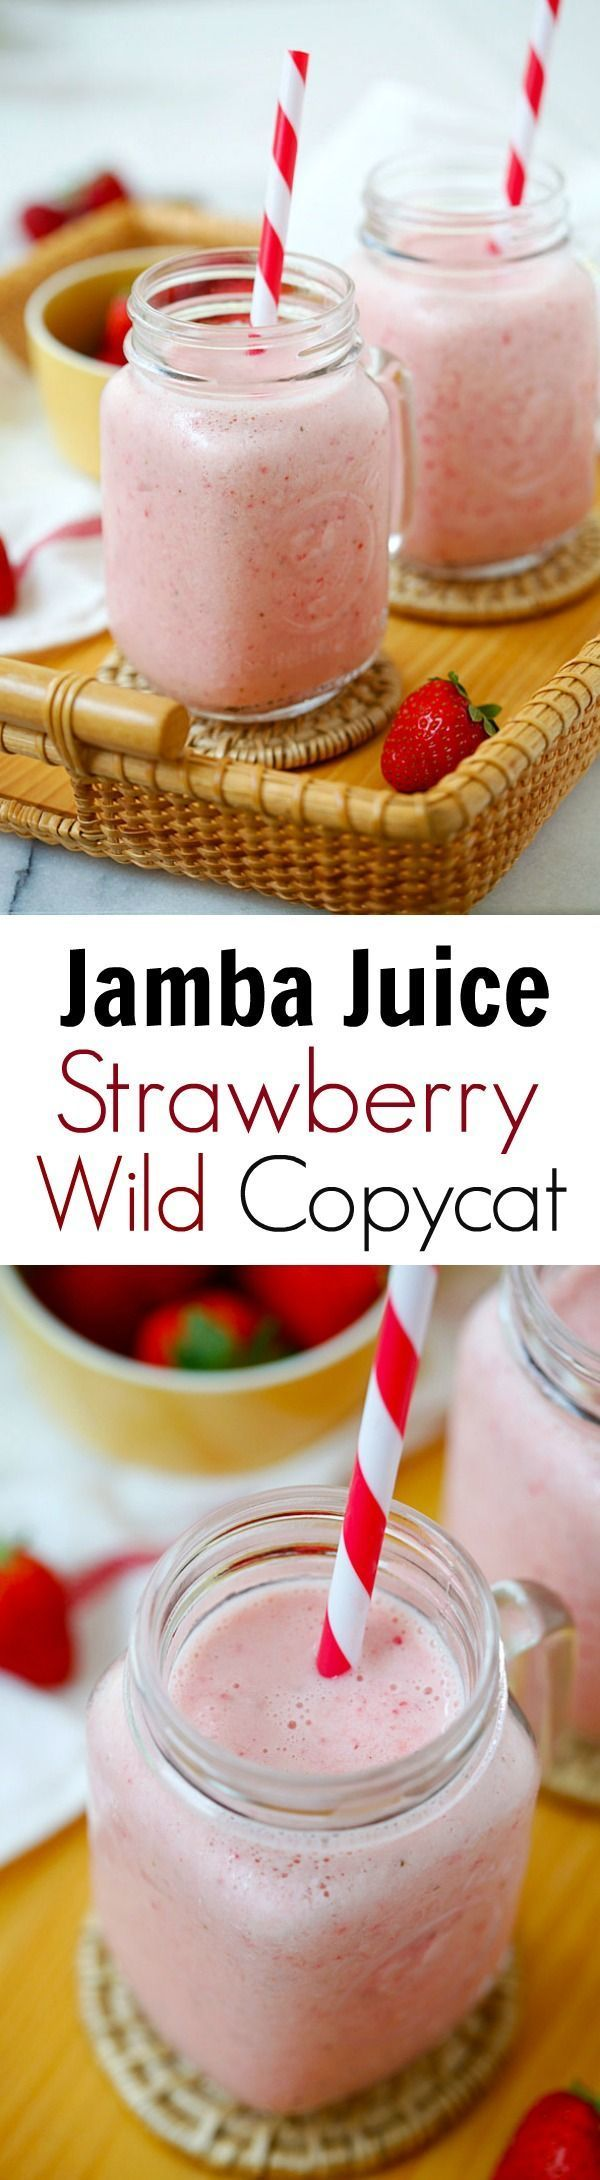 Jamba Juice Strawberry Wild Copycat – the easiest recipe that is exactly like the real smoothie at Jamba Juice. It's healthy and budget-friendly | rasamalaysia.com